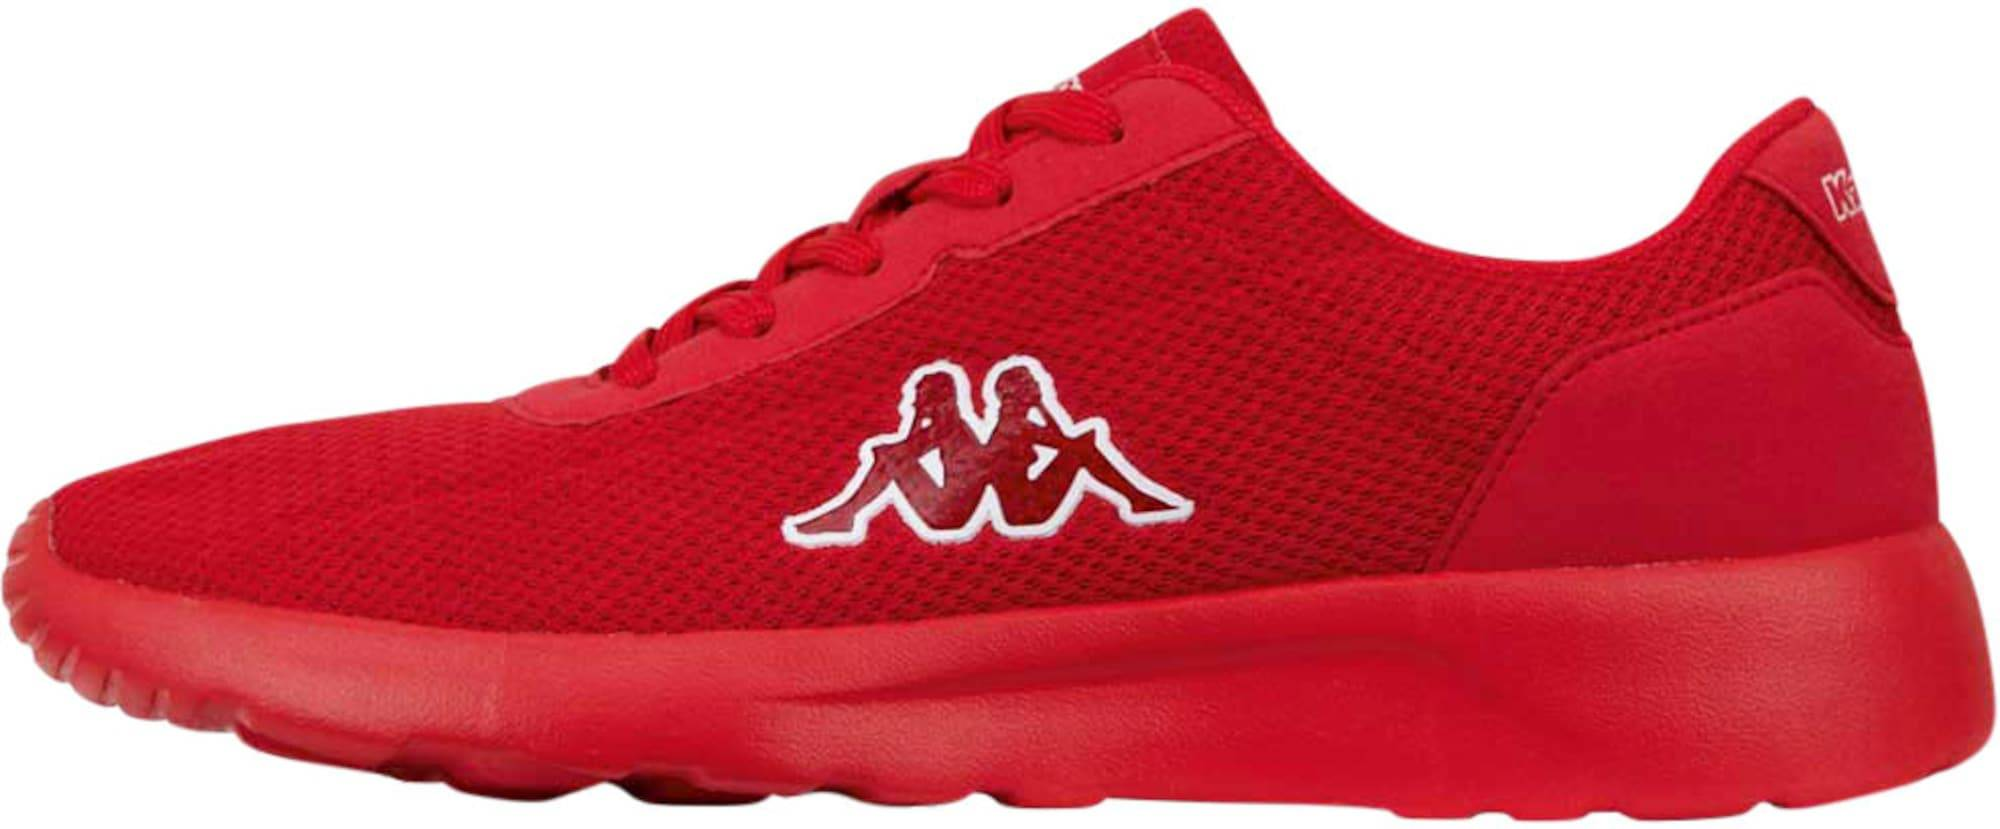 KAPPA Chaussure de course  - Rouge - Taille: 42 - male